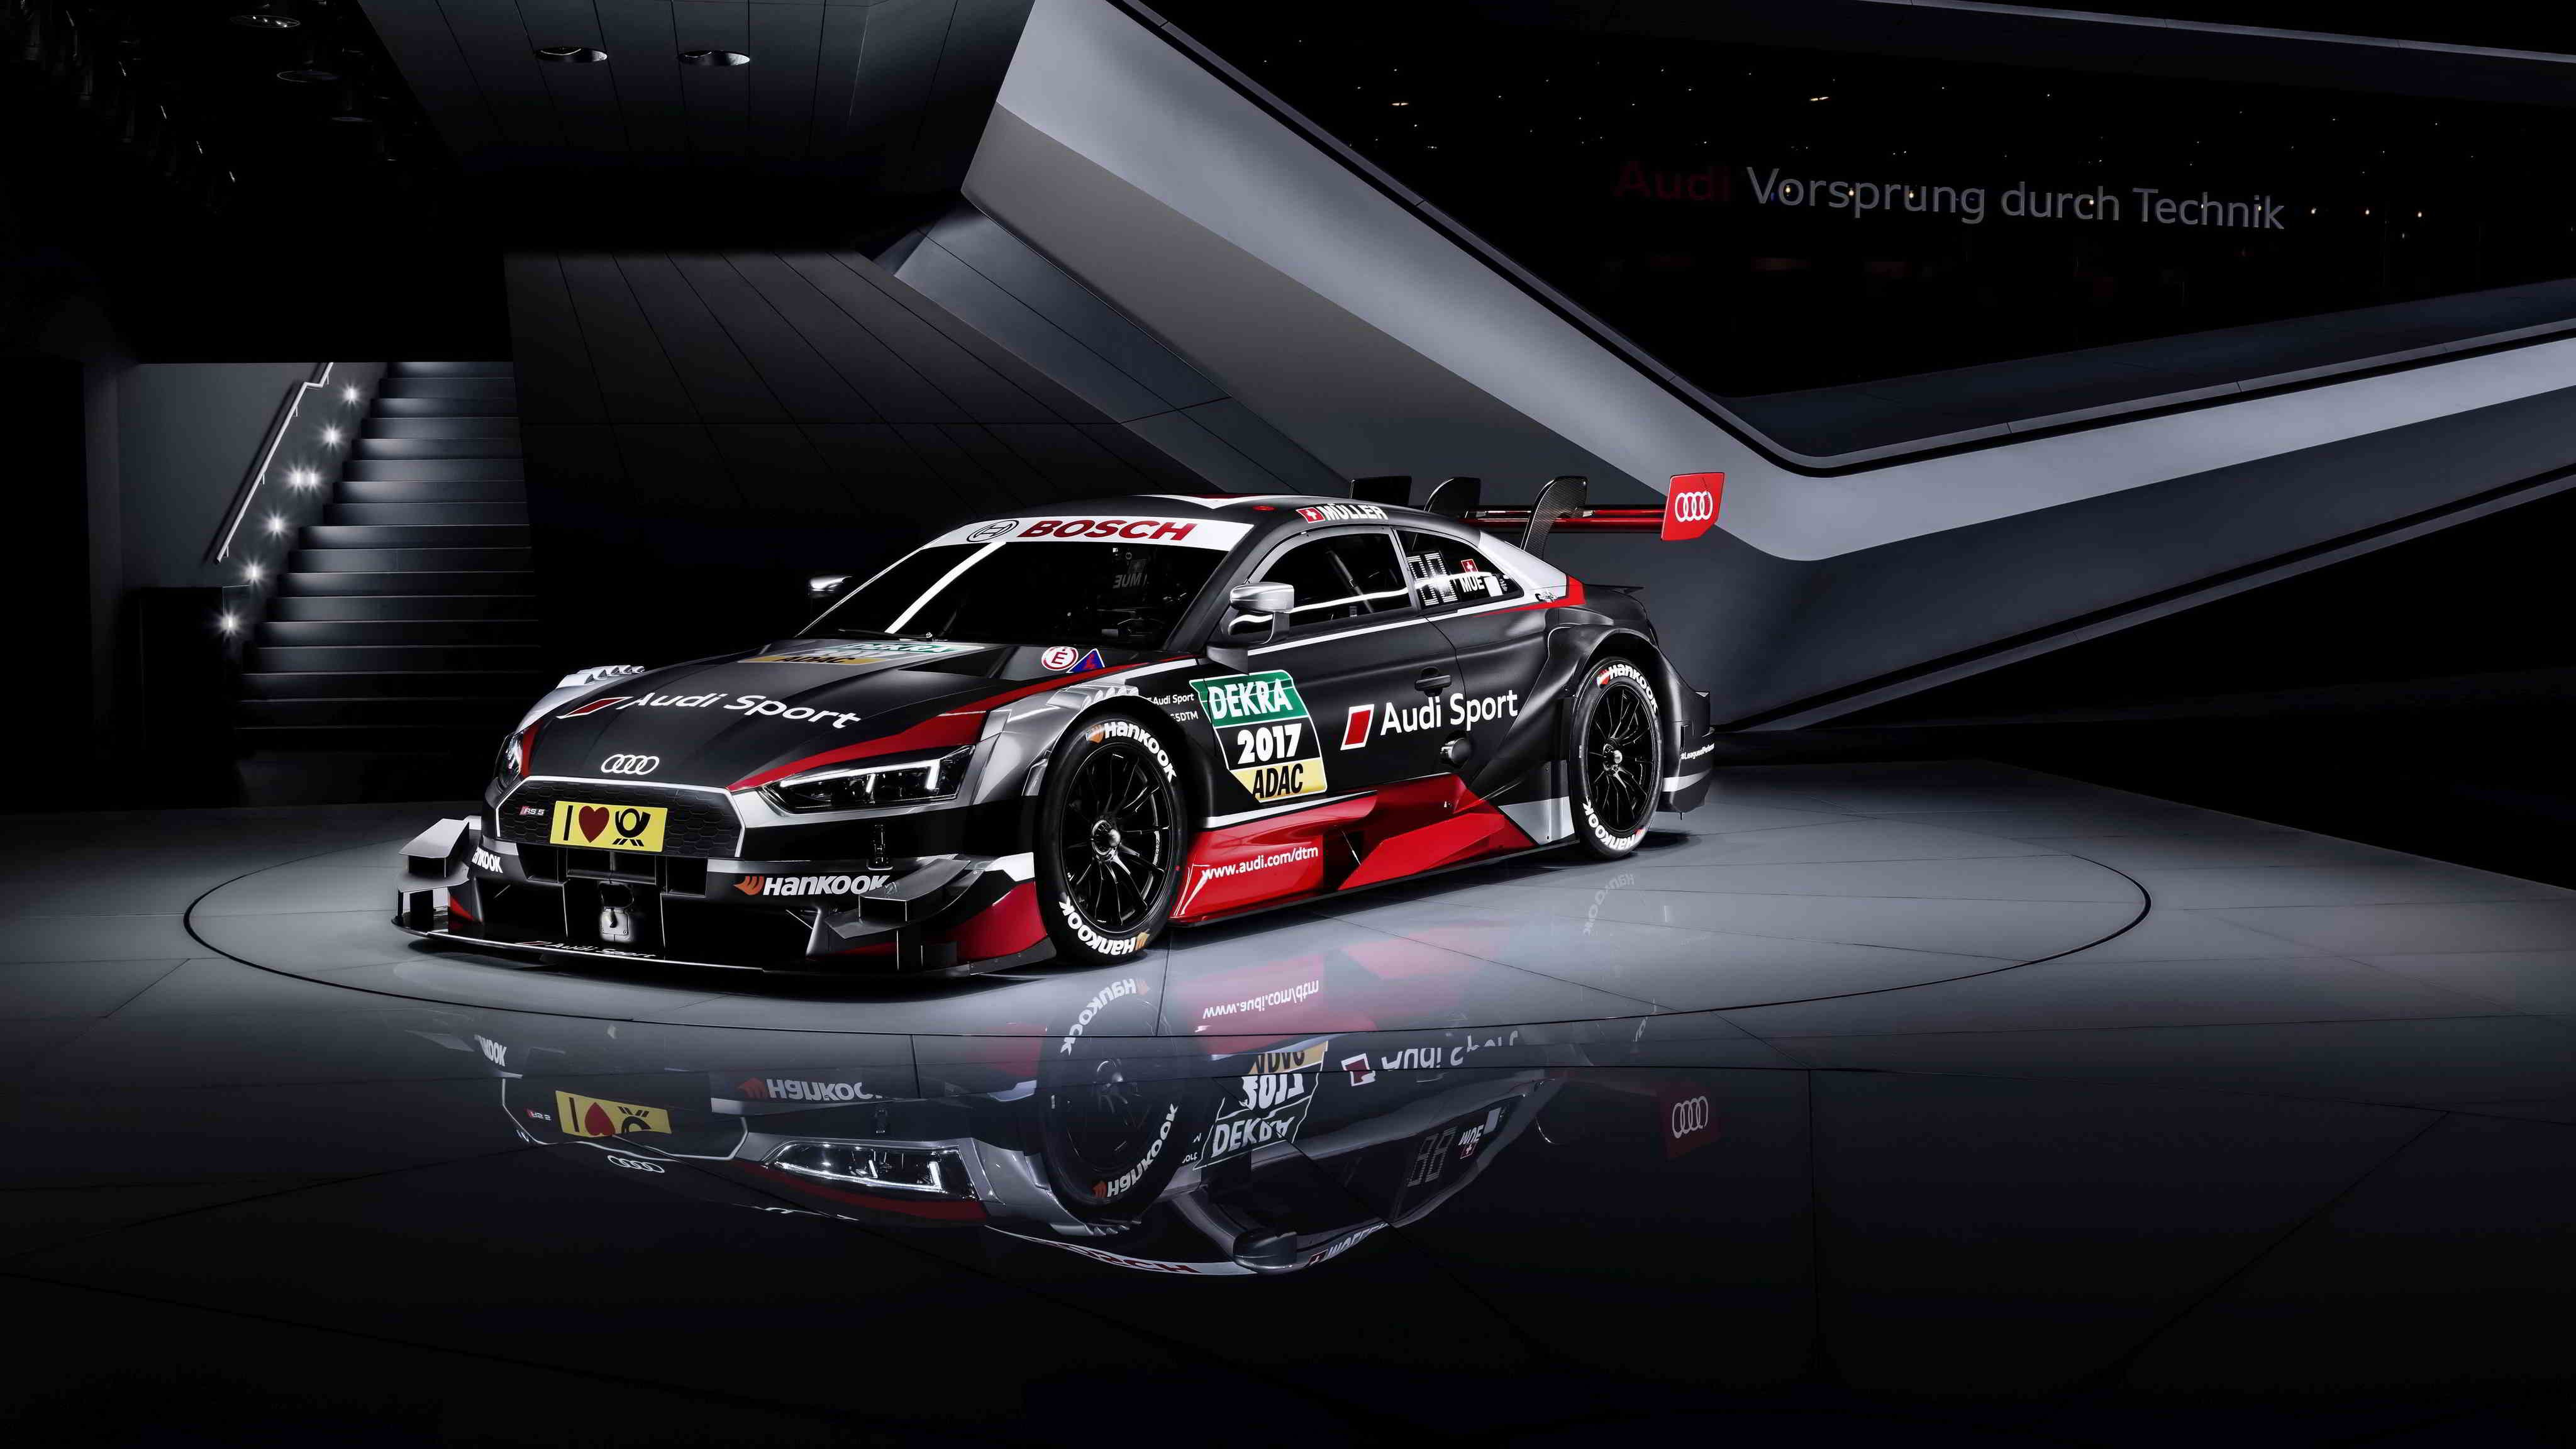 46 Full HD Cool Car Wallpapers That Look Amazing Free Download